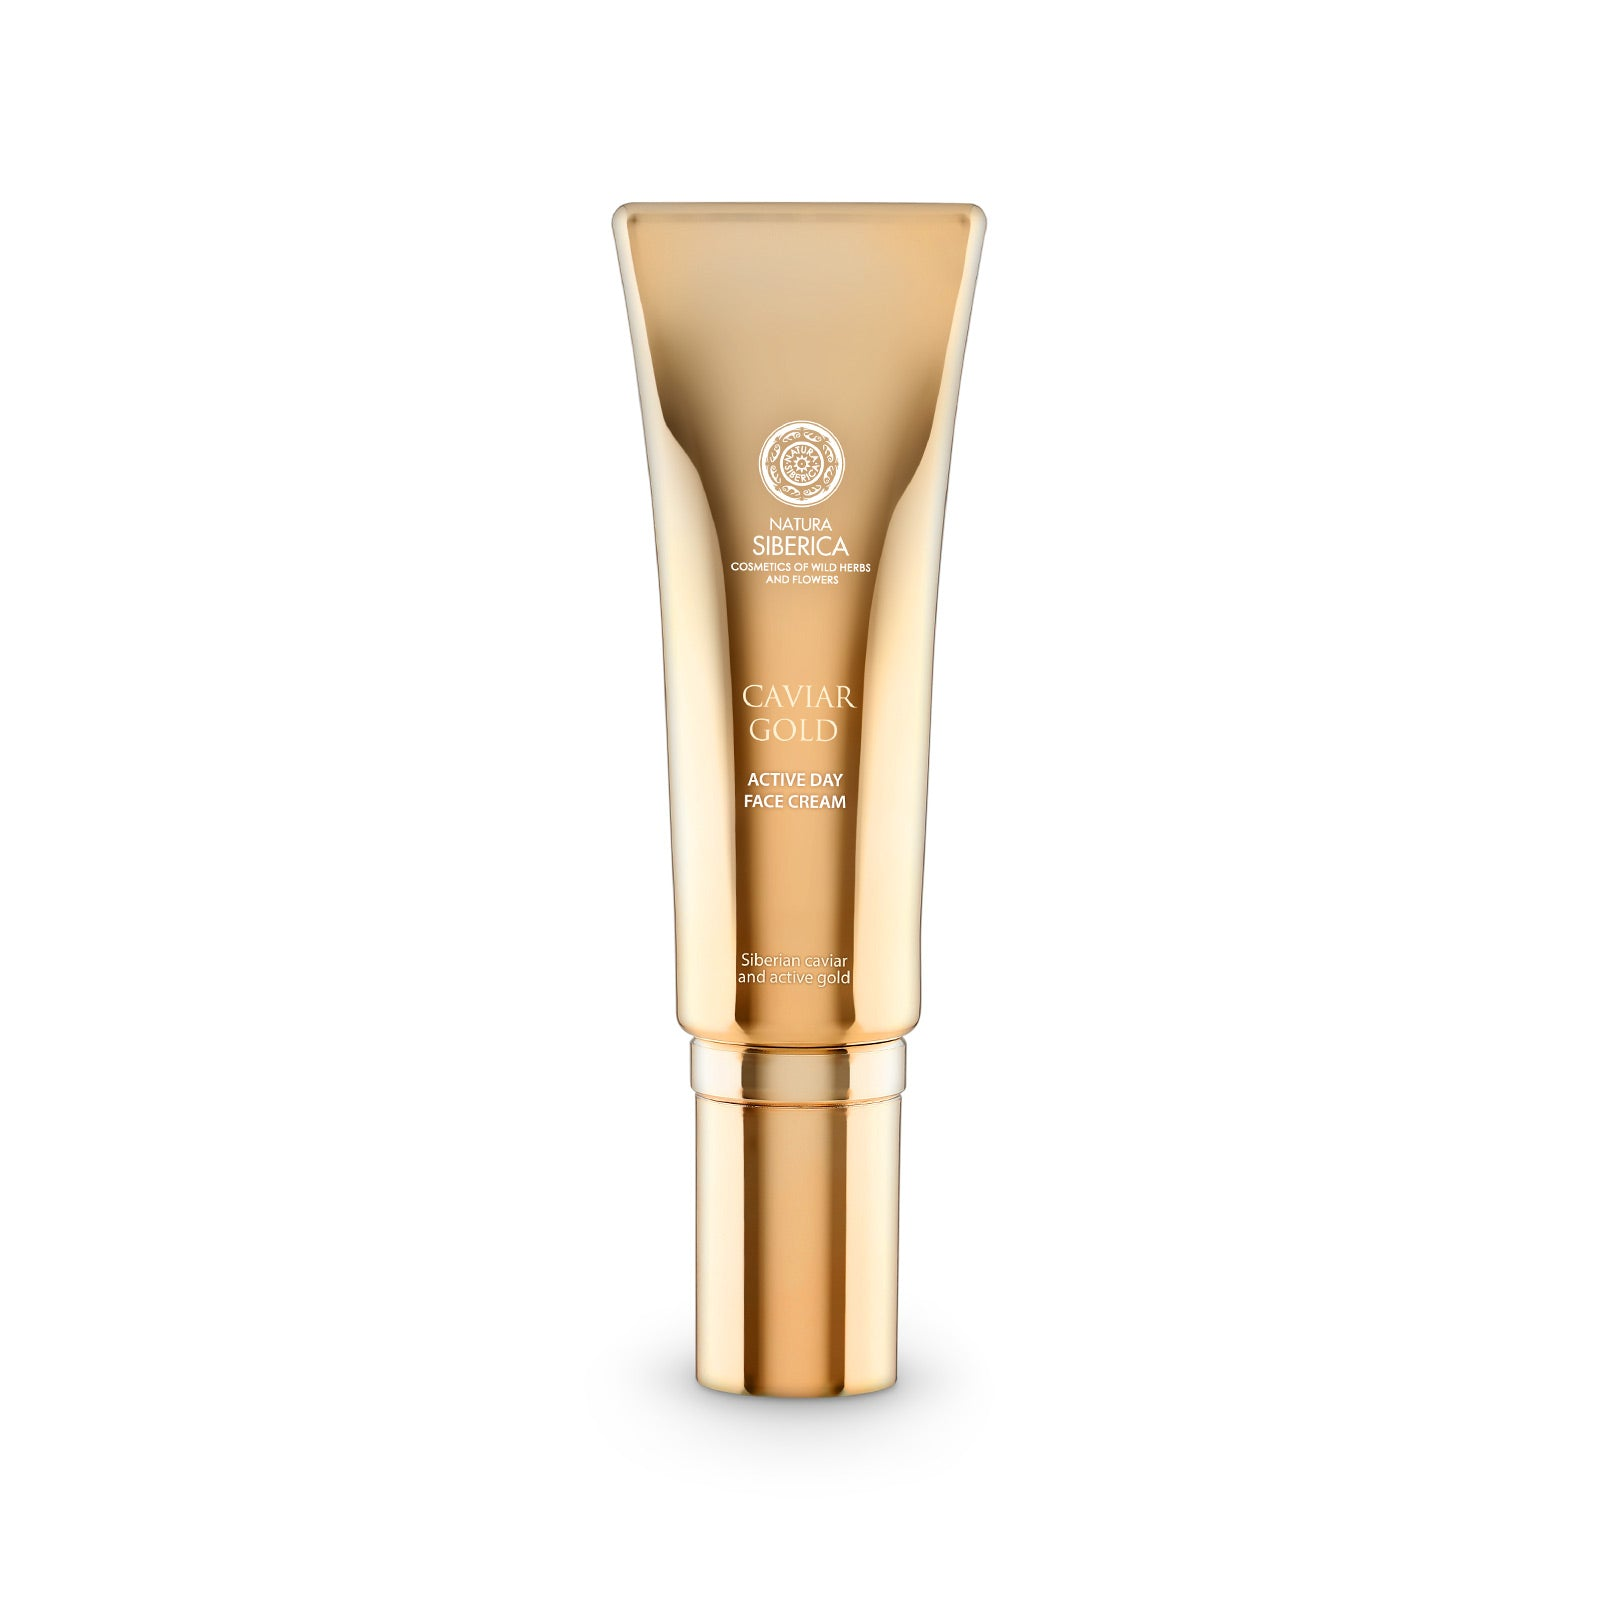 Caviar Gold Active Day Face Cream, 30 ml